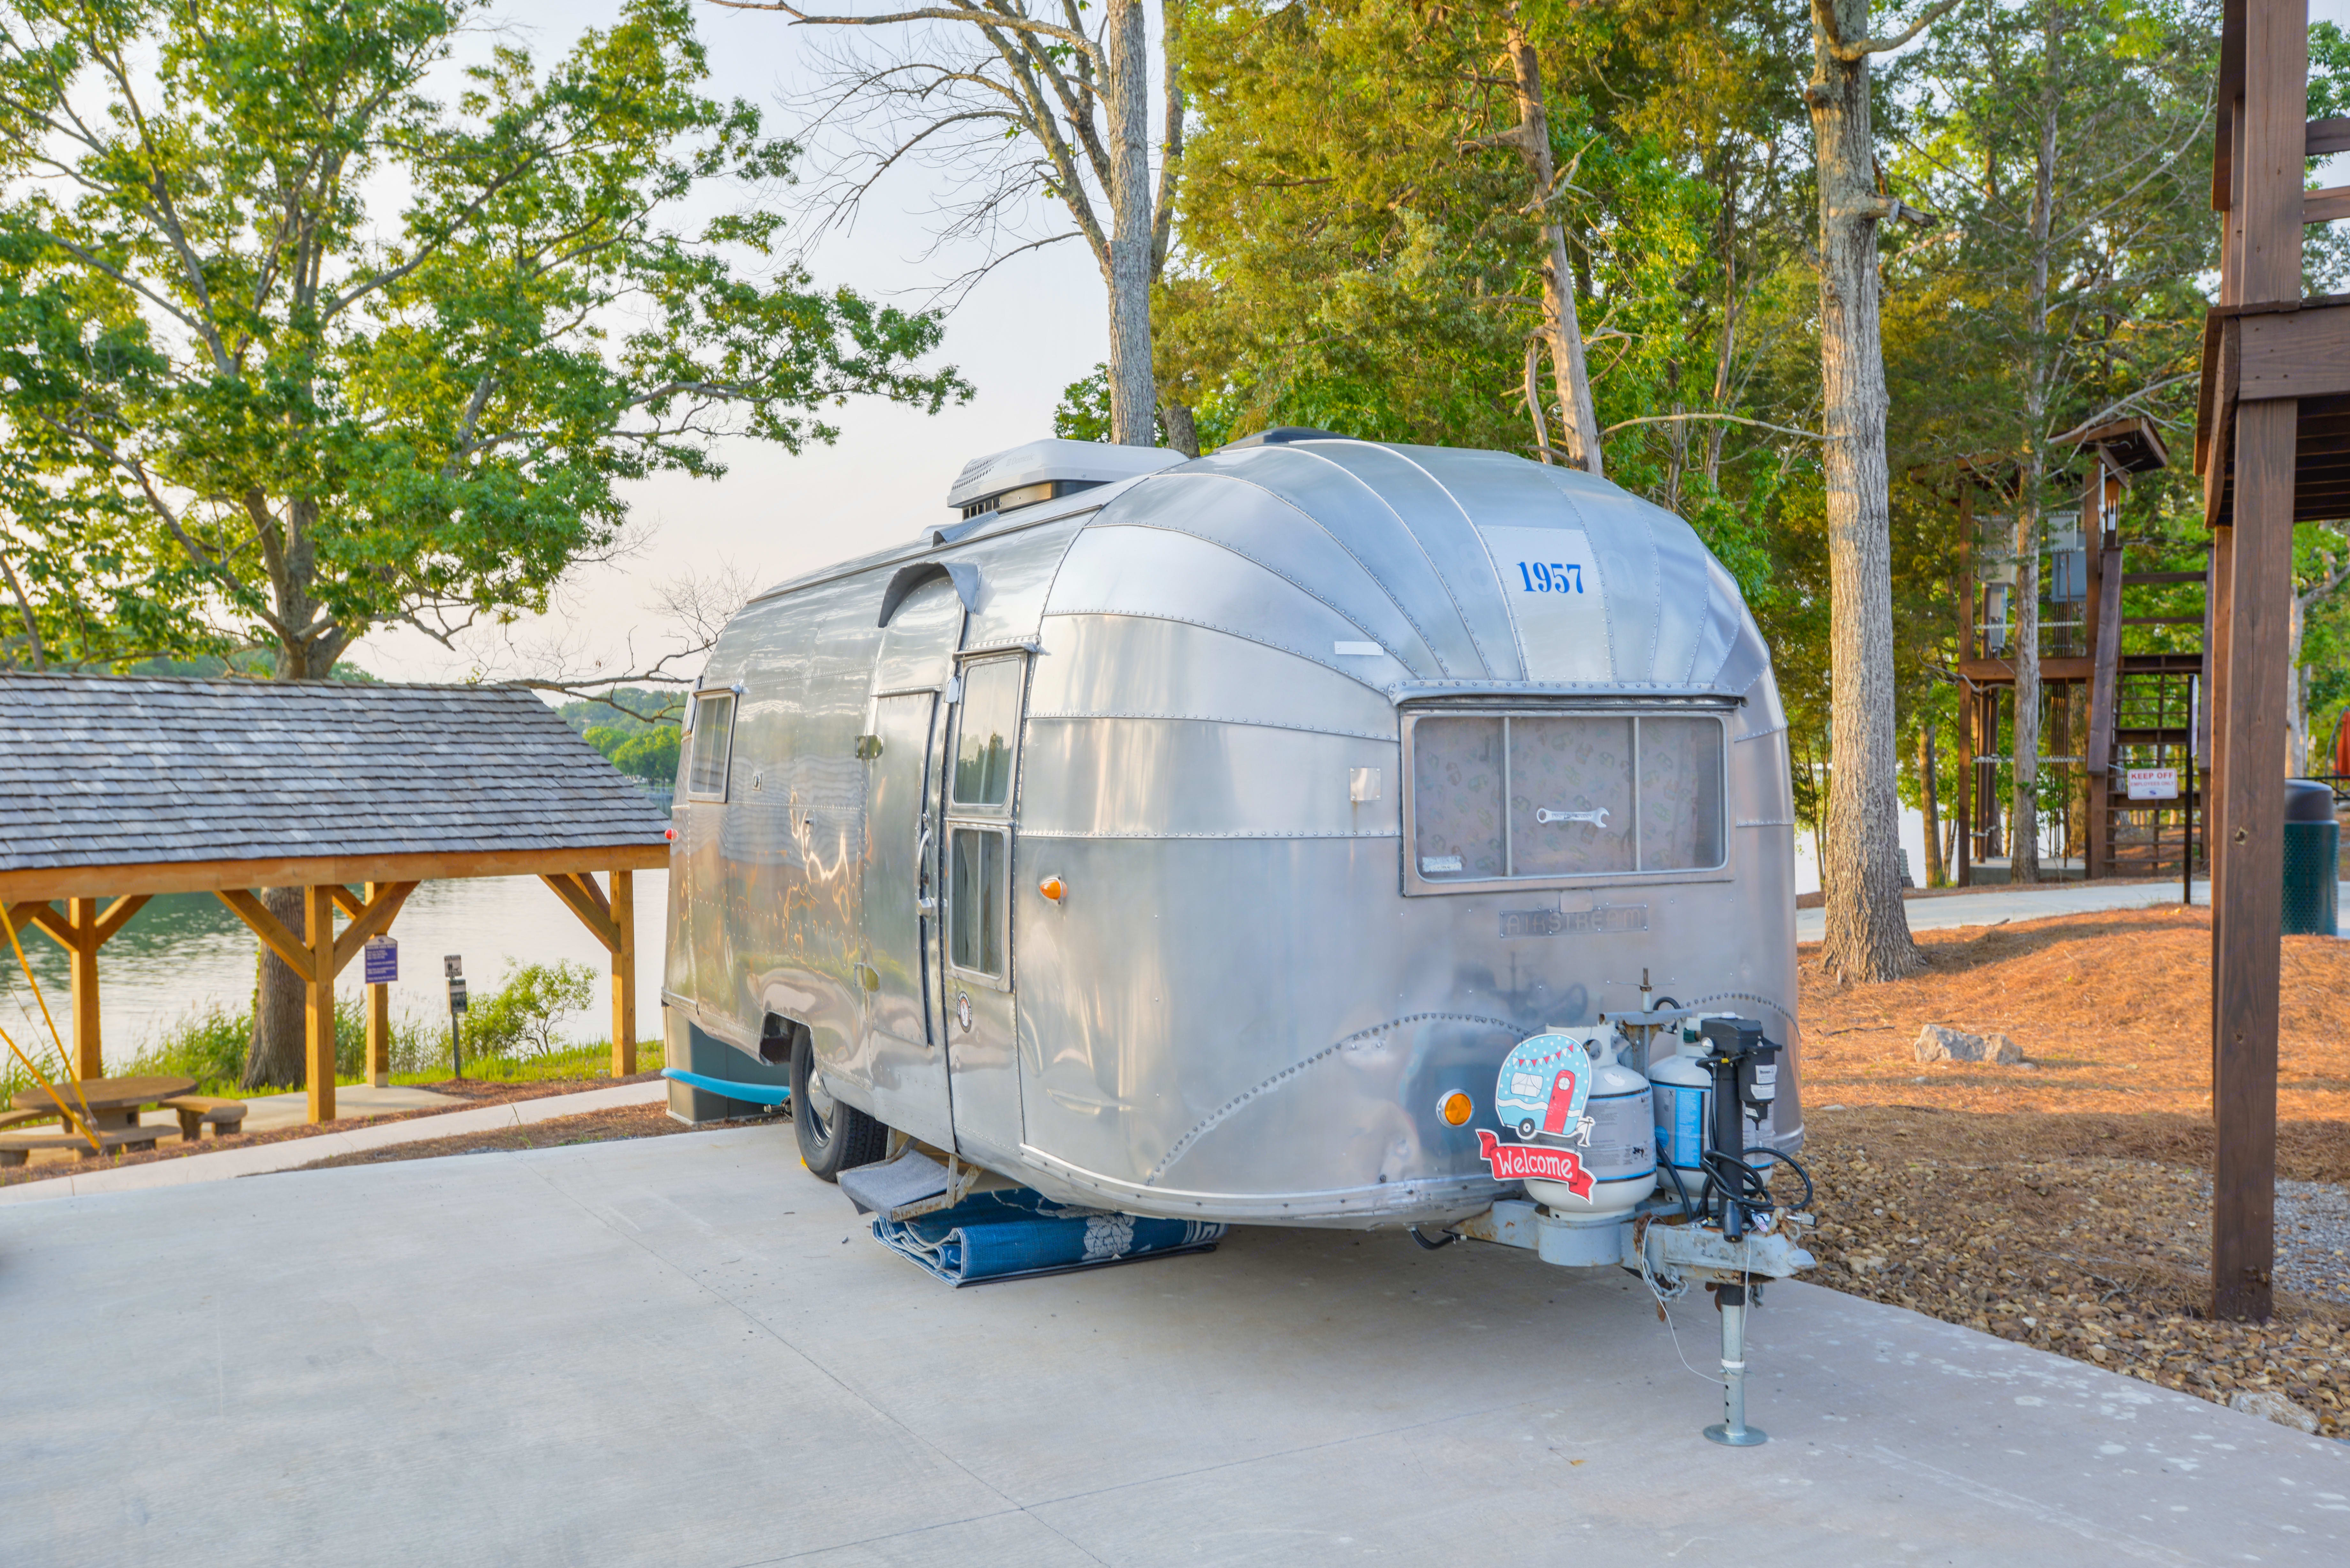 1957 Airstream - Completely remodeled :). Airstream Caravanner 1957